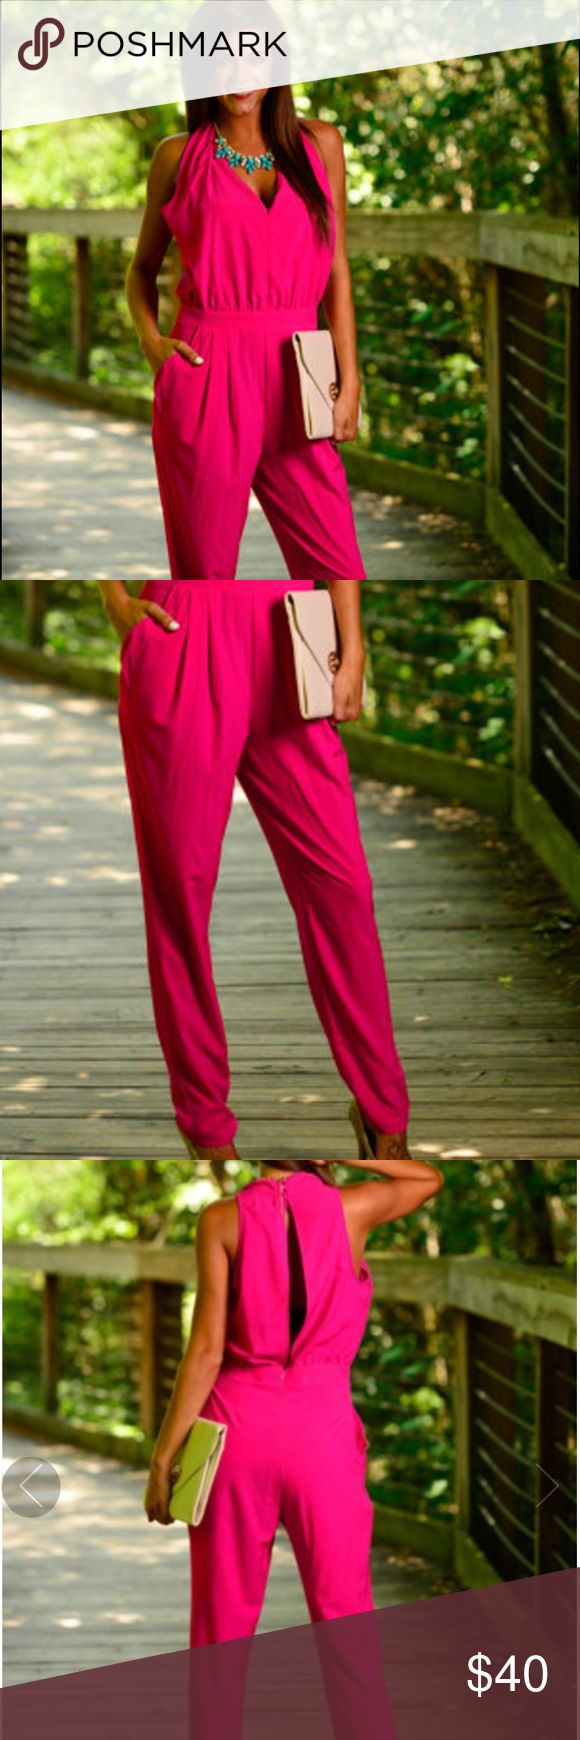 Mint Julep Boutique Fuchsia Pink Jumpsuit Size Medium Fuchsia jumpsuit from the Mint Julep. Has a flirty slit in the back as well as pockets in the front. Never worn! Mustard Seed Pants Jumpsuits & Rompers